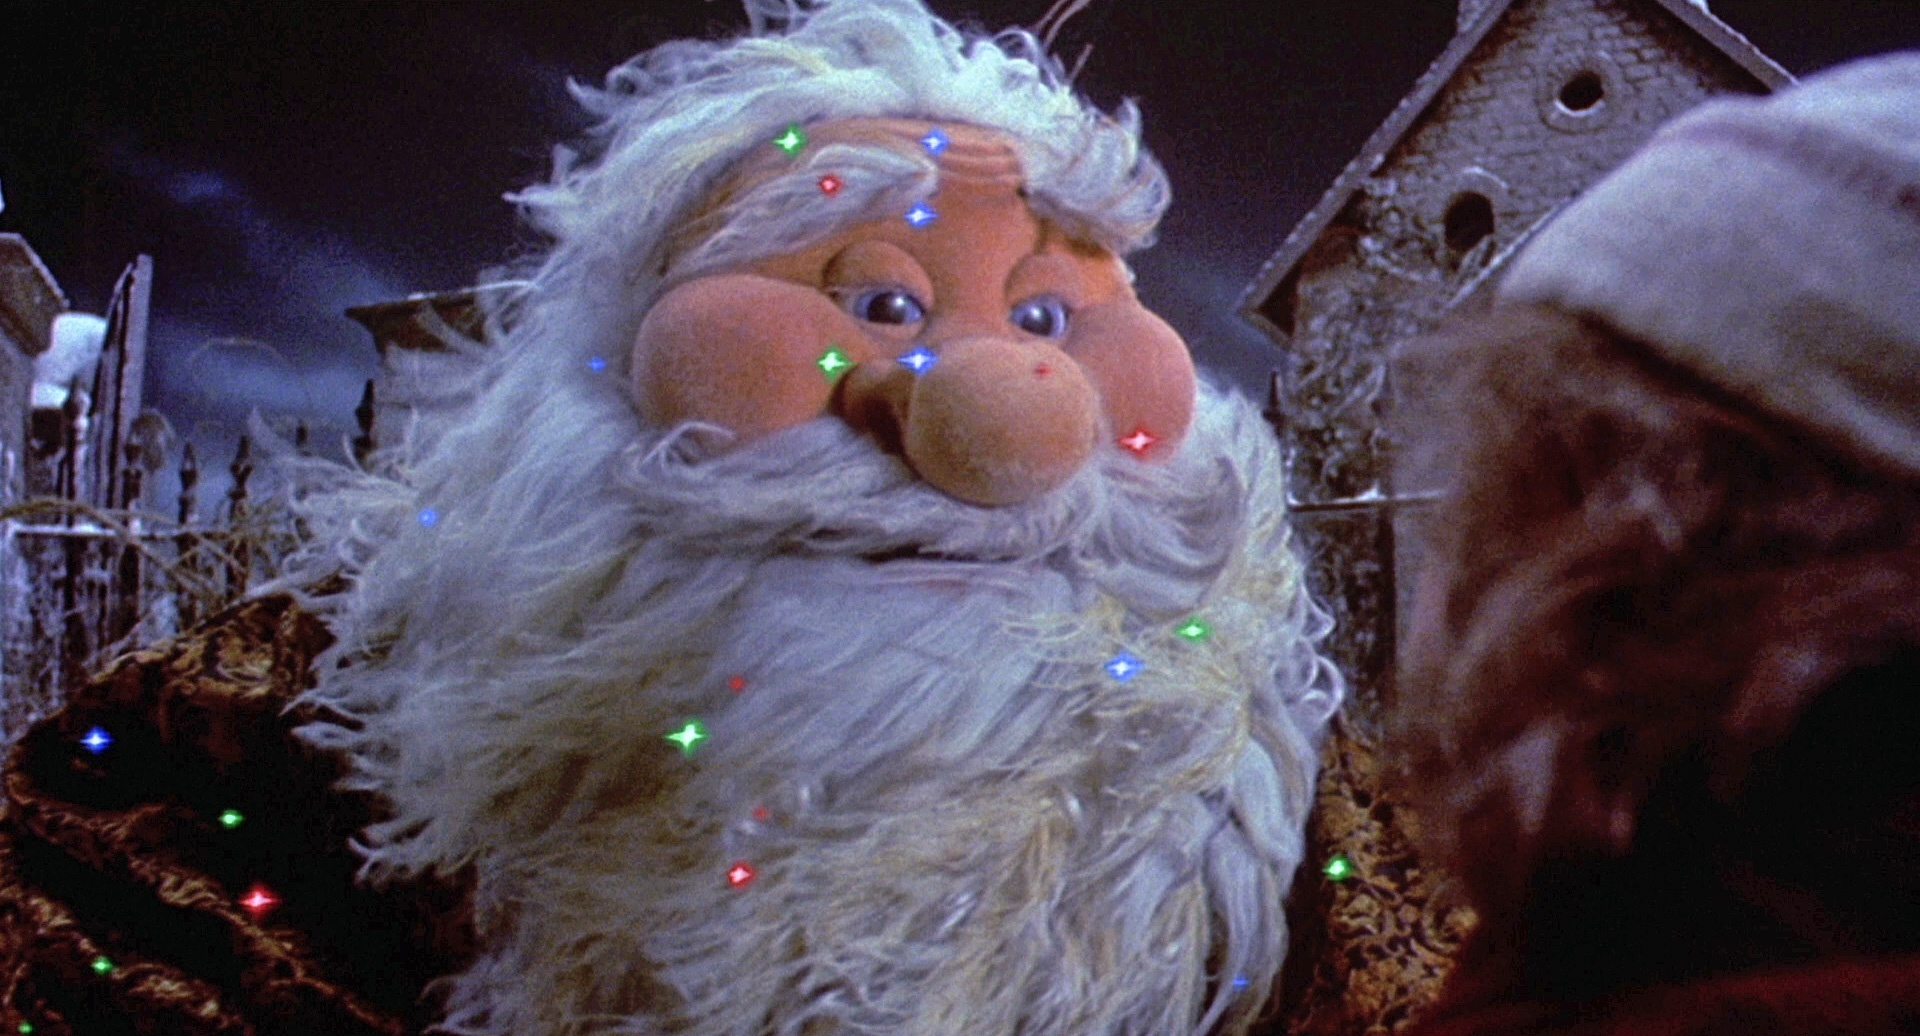 The Ghost of Christmas Present - In A Christmas Carol by Charles Dickens the character, Scrooge was visited by three Christmas ghost. The Past, Present and Future.